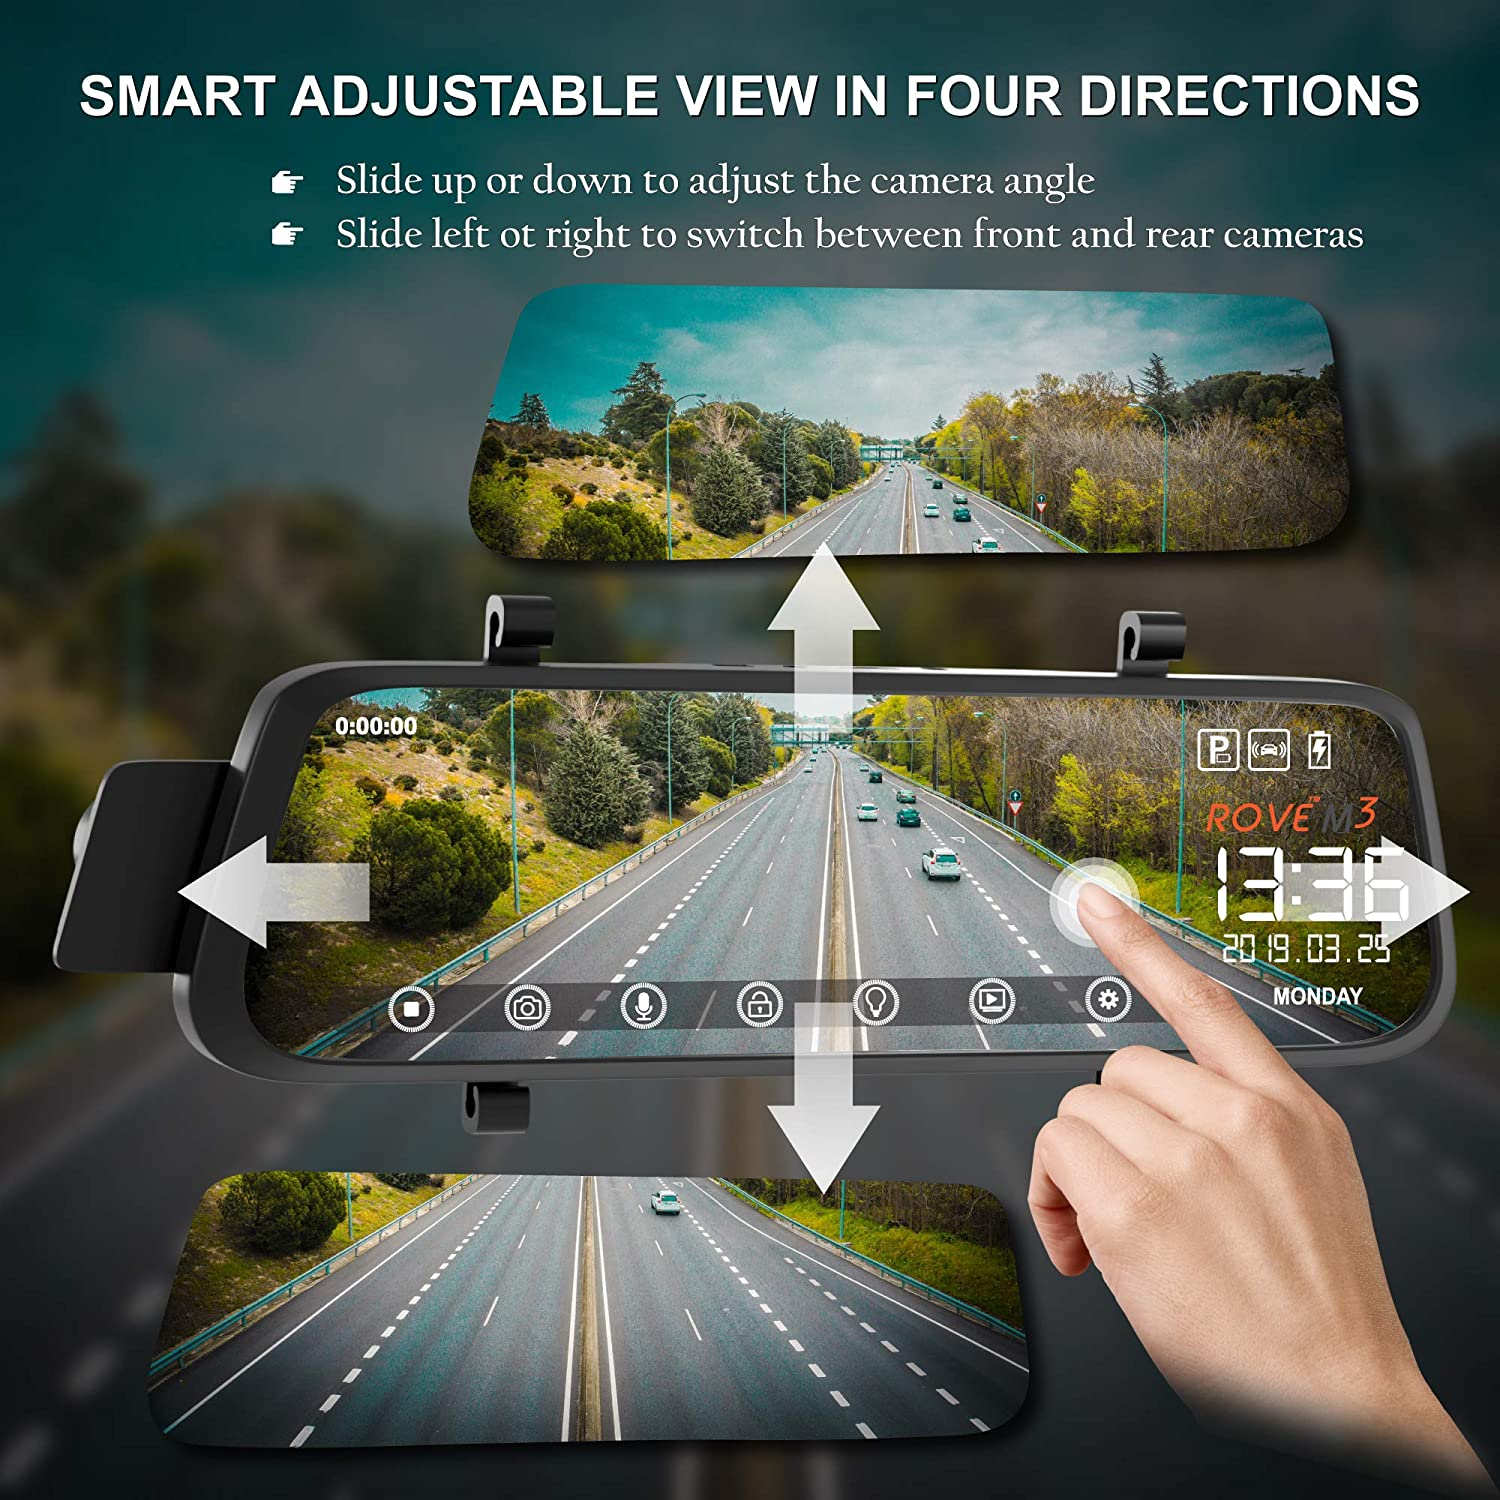 FHD 1080p Front and Rear View 9.66 Inch Touch Screen Monitor Dual Lens Dash Cam with Built in Backup Camera Parking G-Sensor Motion Detection GPS Player Rove M3 Streaming Mirror Dashboard Camera